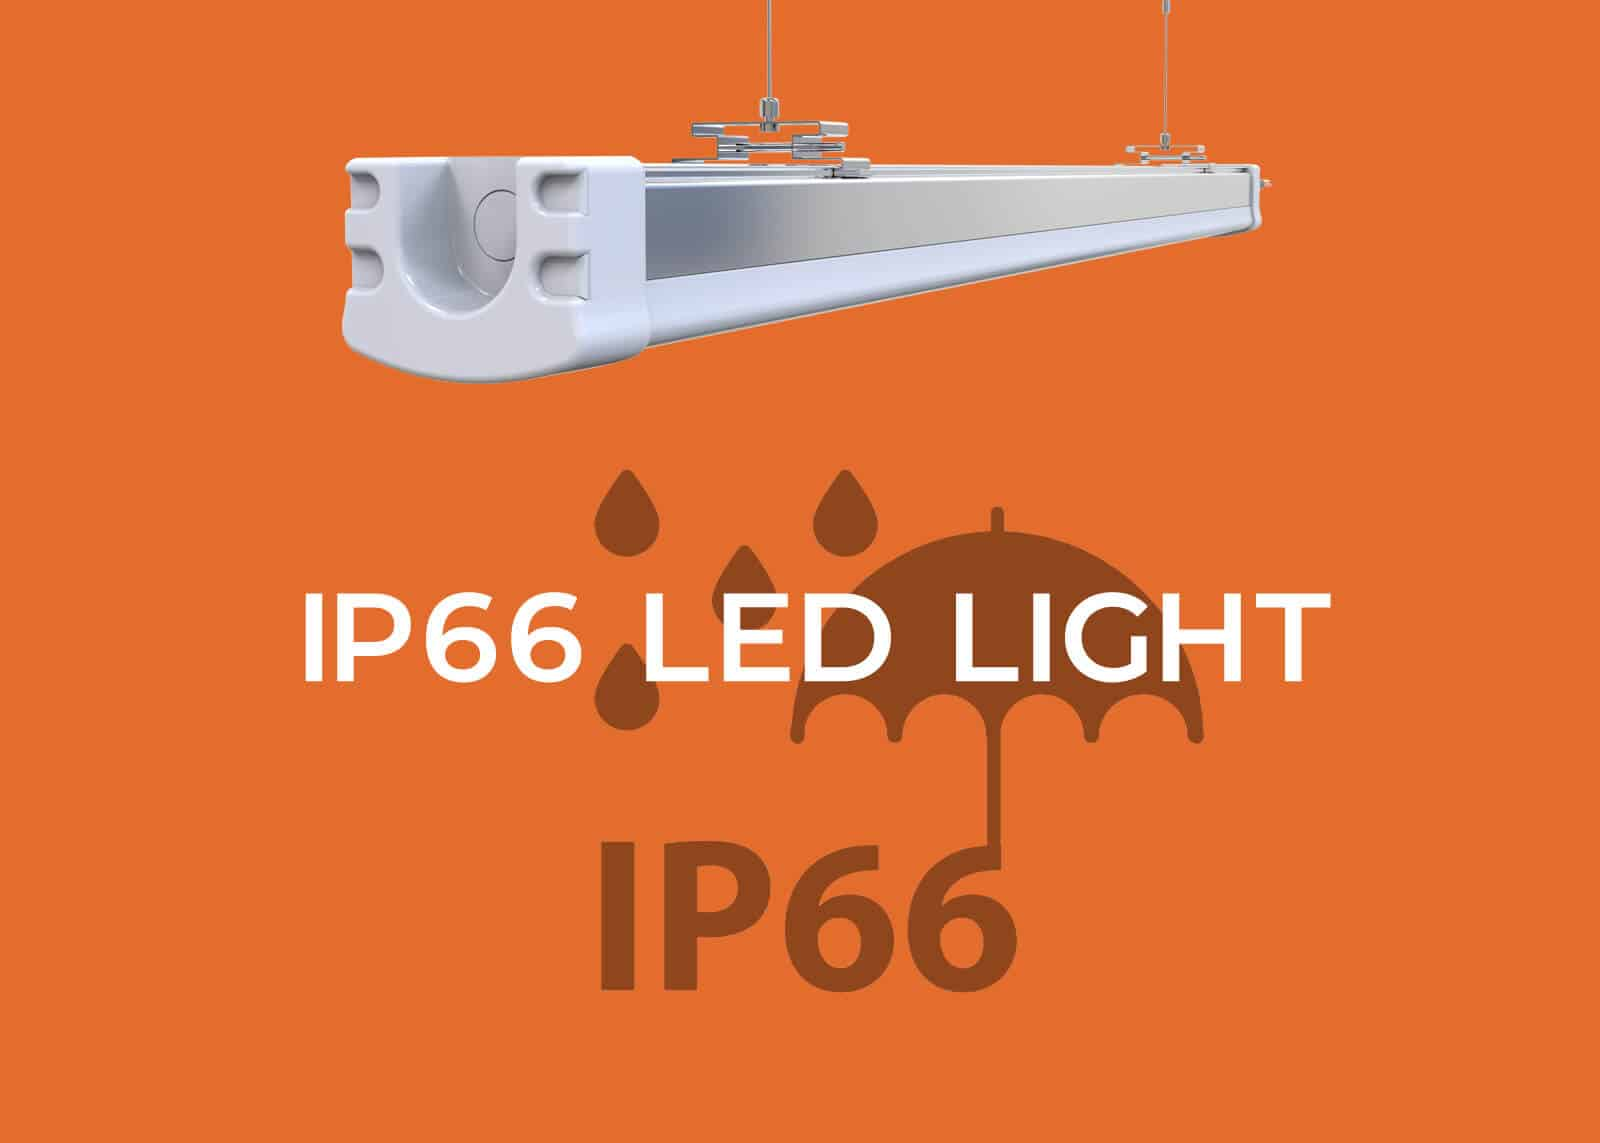 IP66 LED LIGHTS